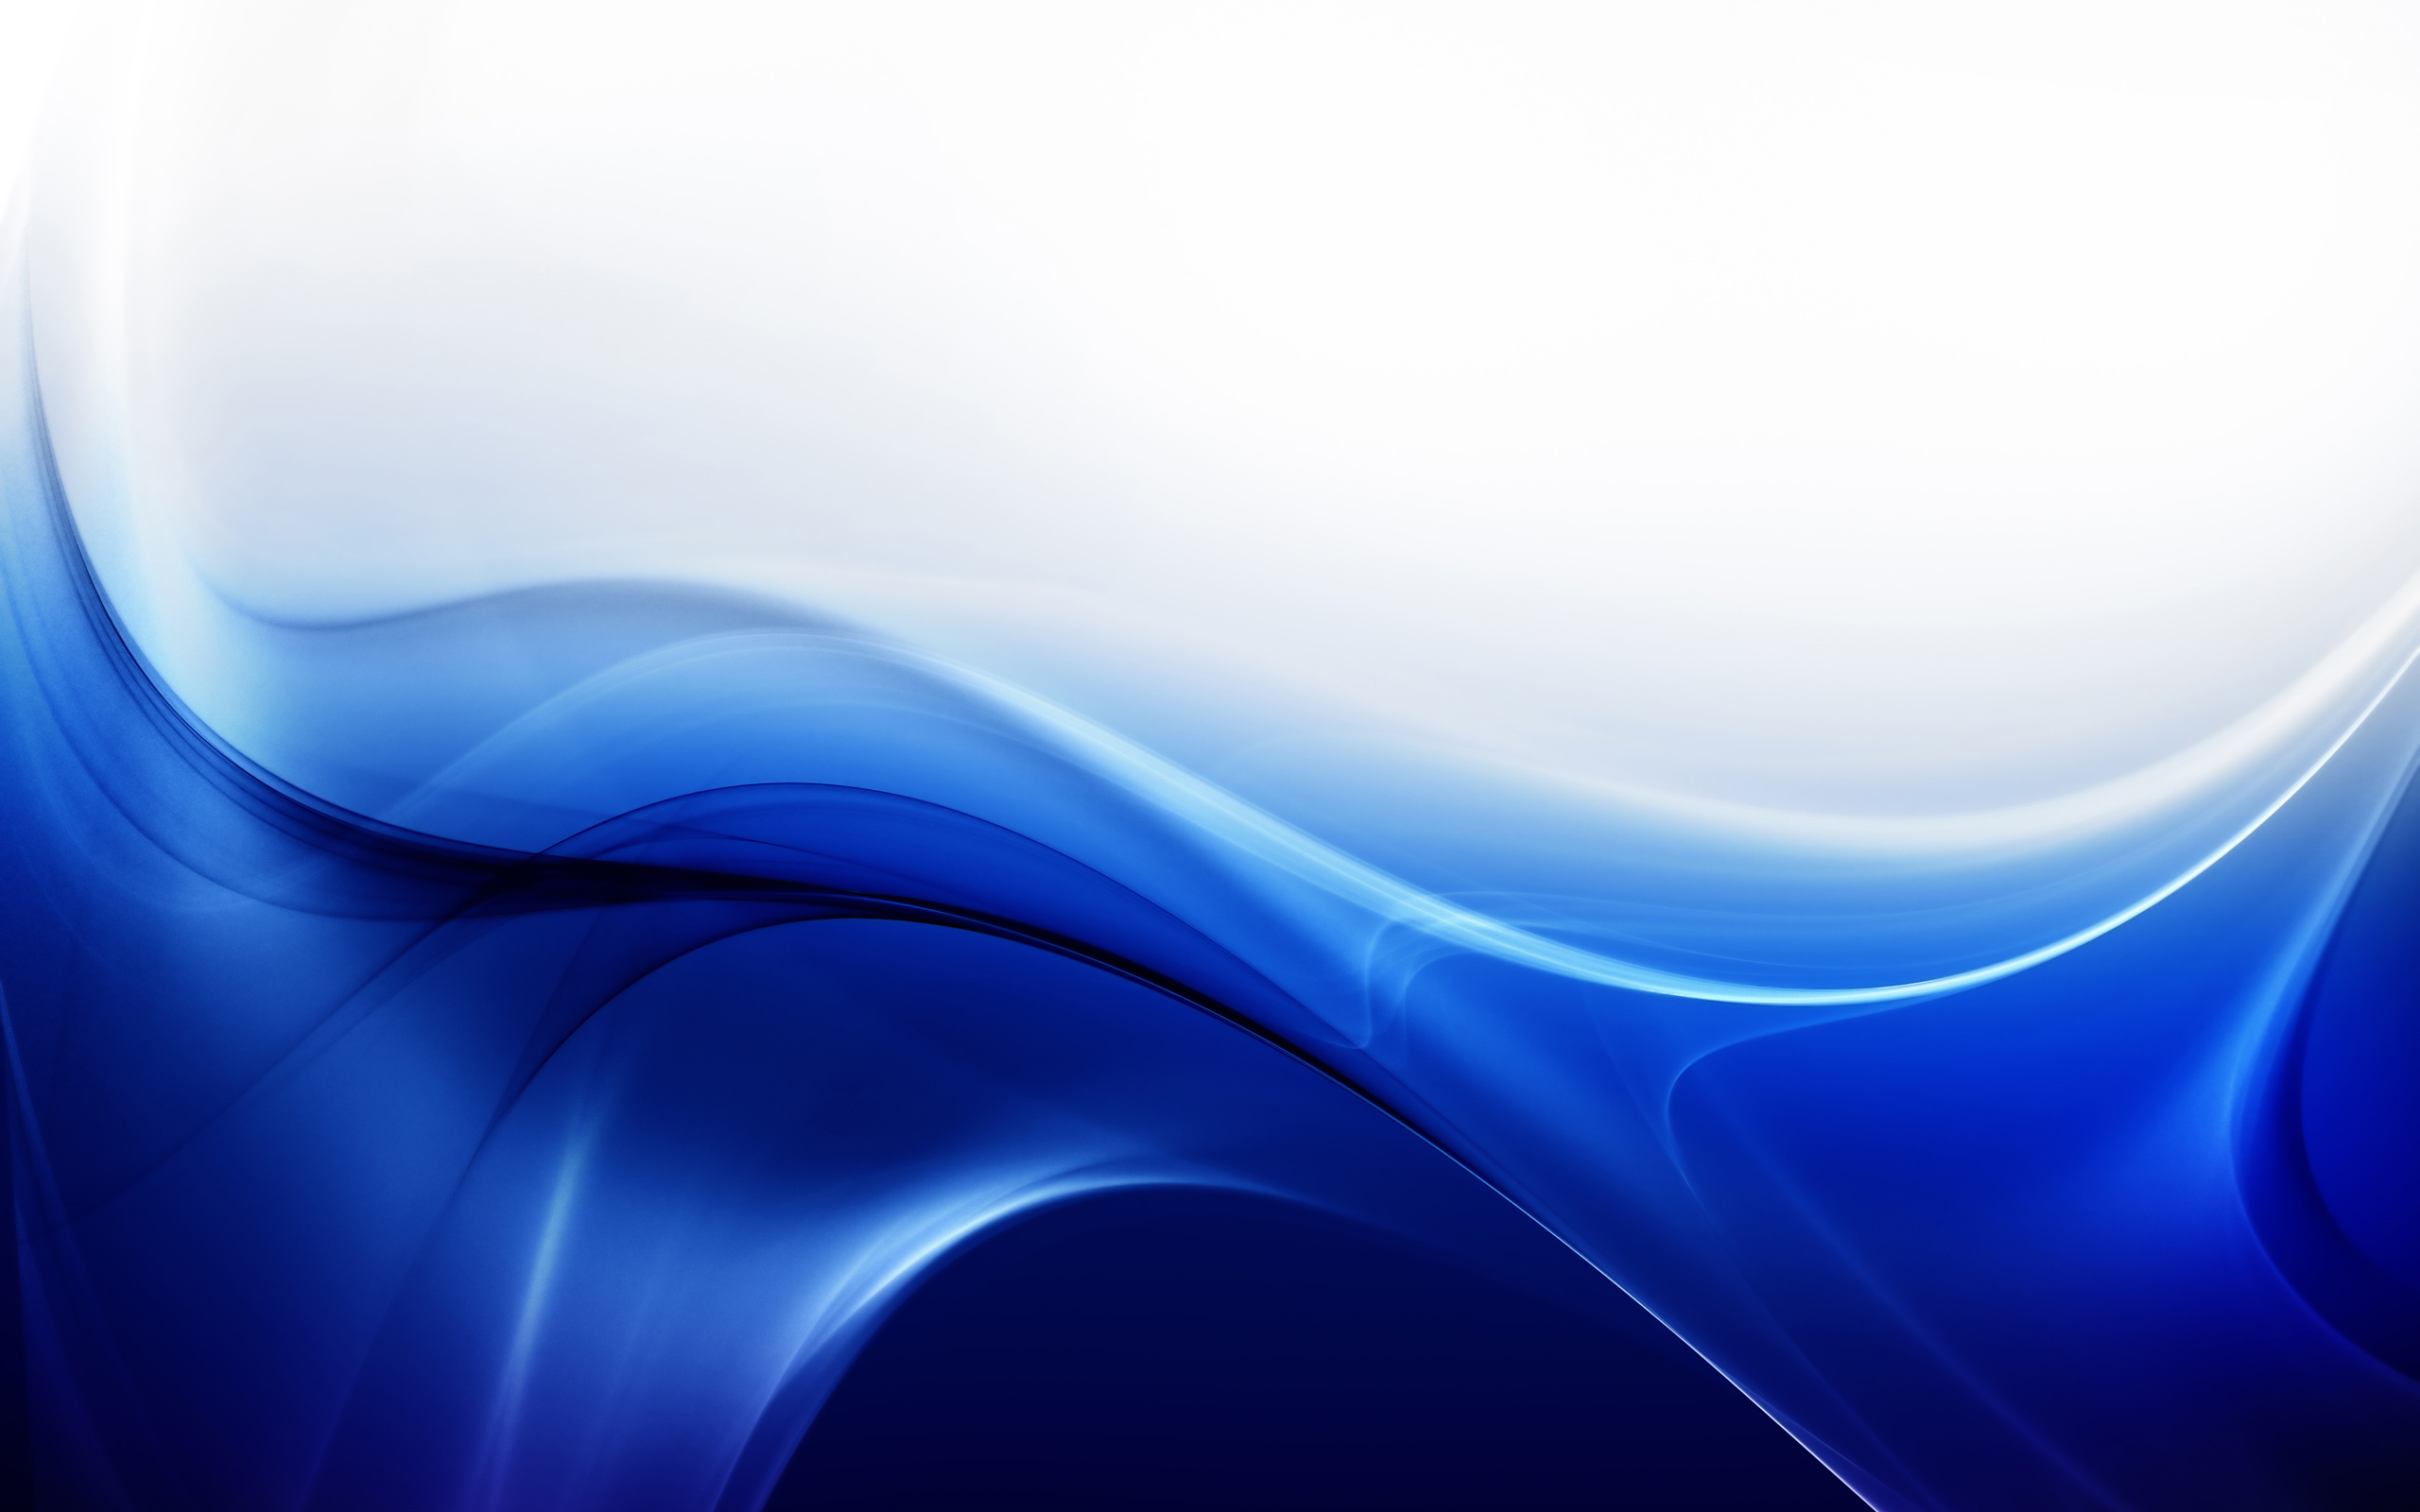 wallpaper hd dlwallhd blue - photo #36